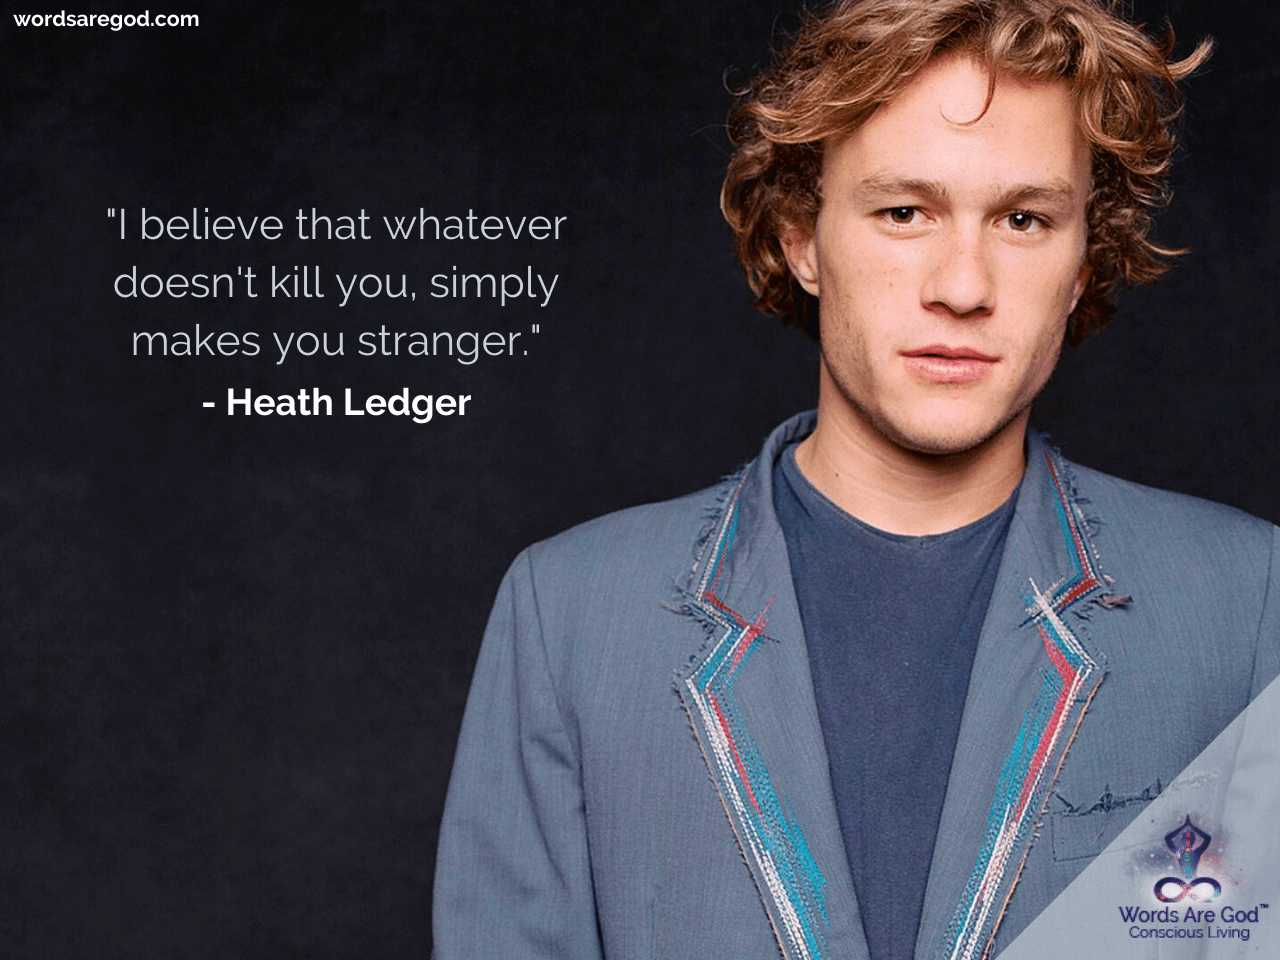 Heath Ledger Quotes Life Quotes Life Quotes Inspirational Quotes